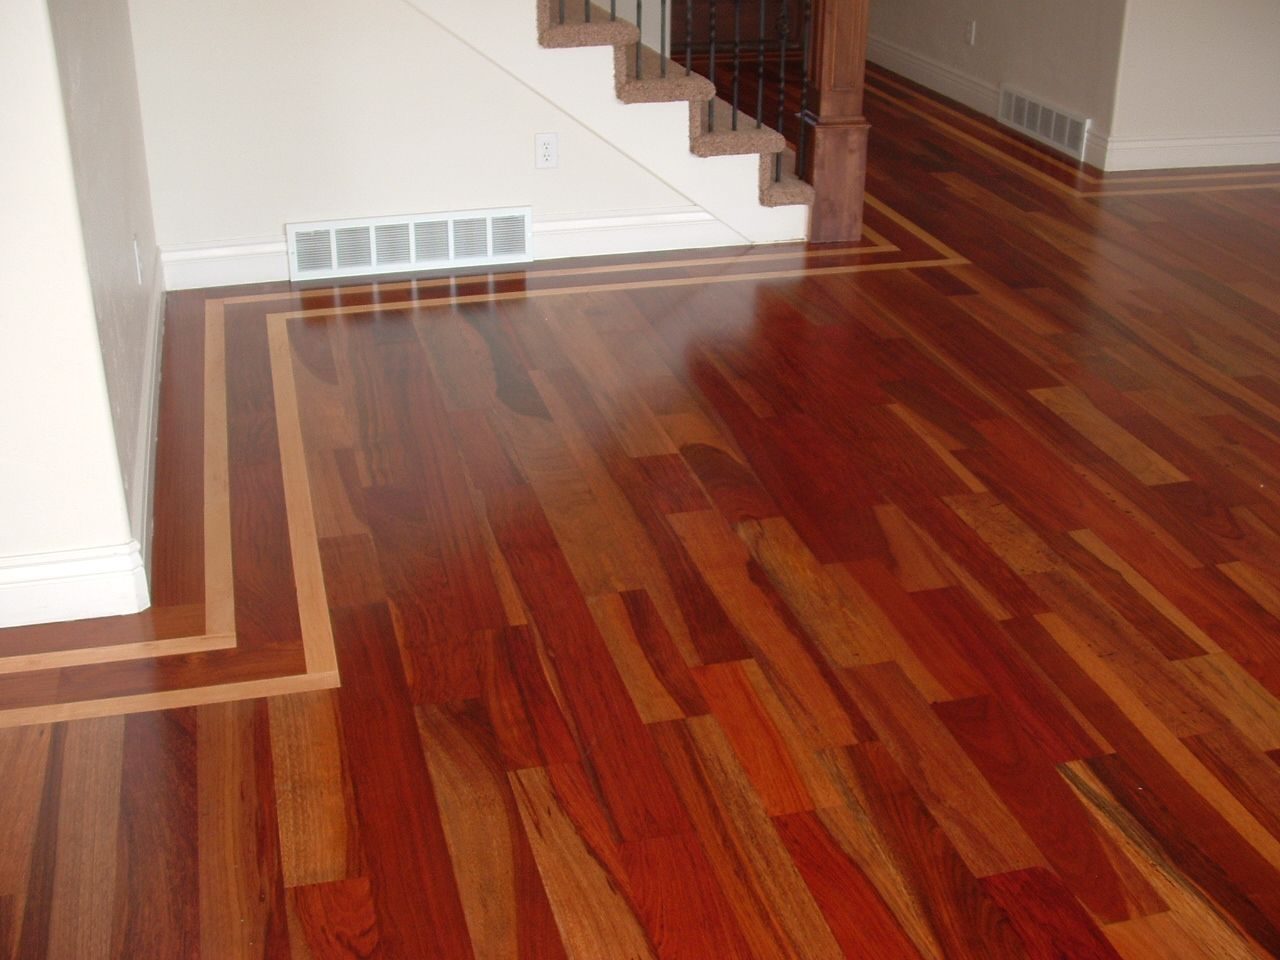 Brazilian cherry hardwood flooring flooring ideas home for Cherry wood flooring